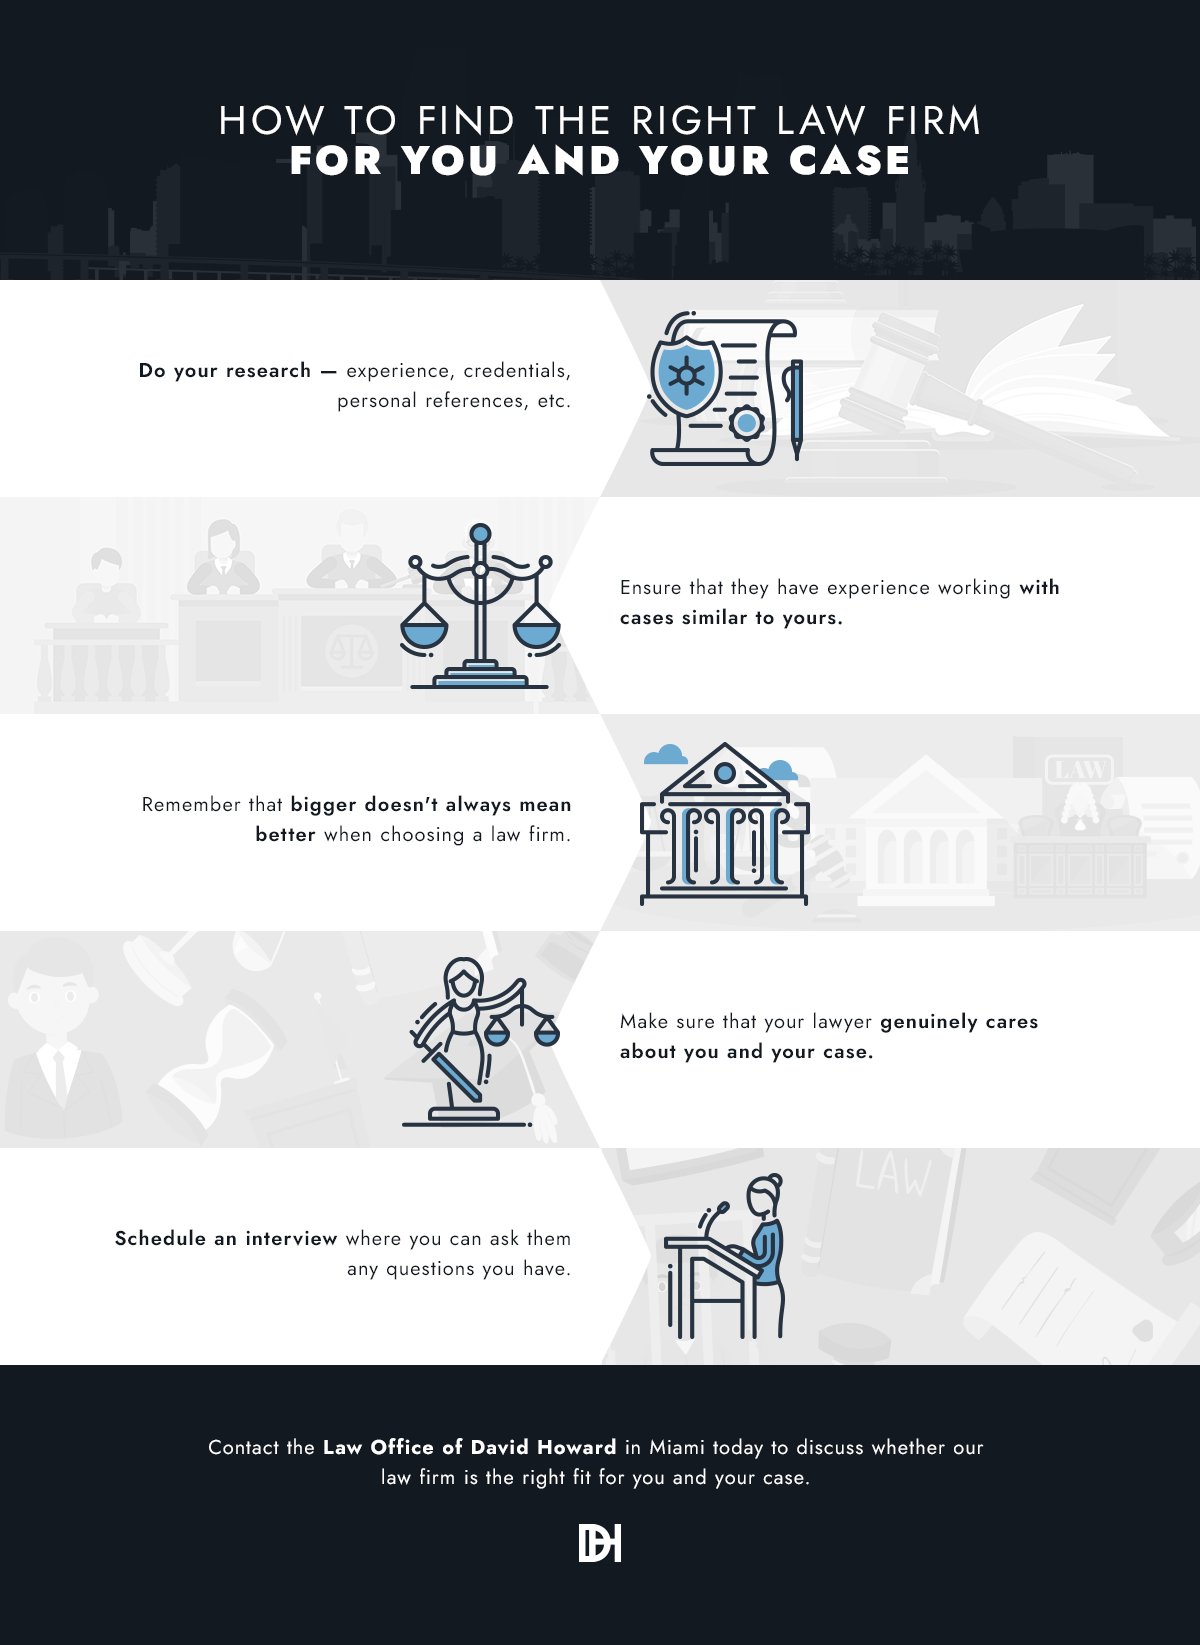 How to Find the Right Law Firm for You and Your Case - infographic.png